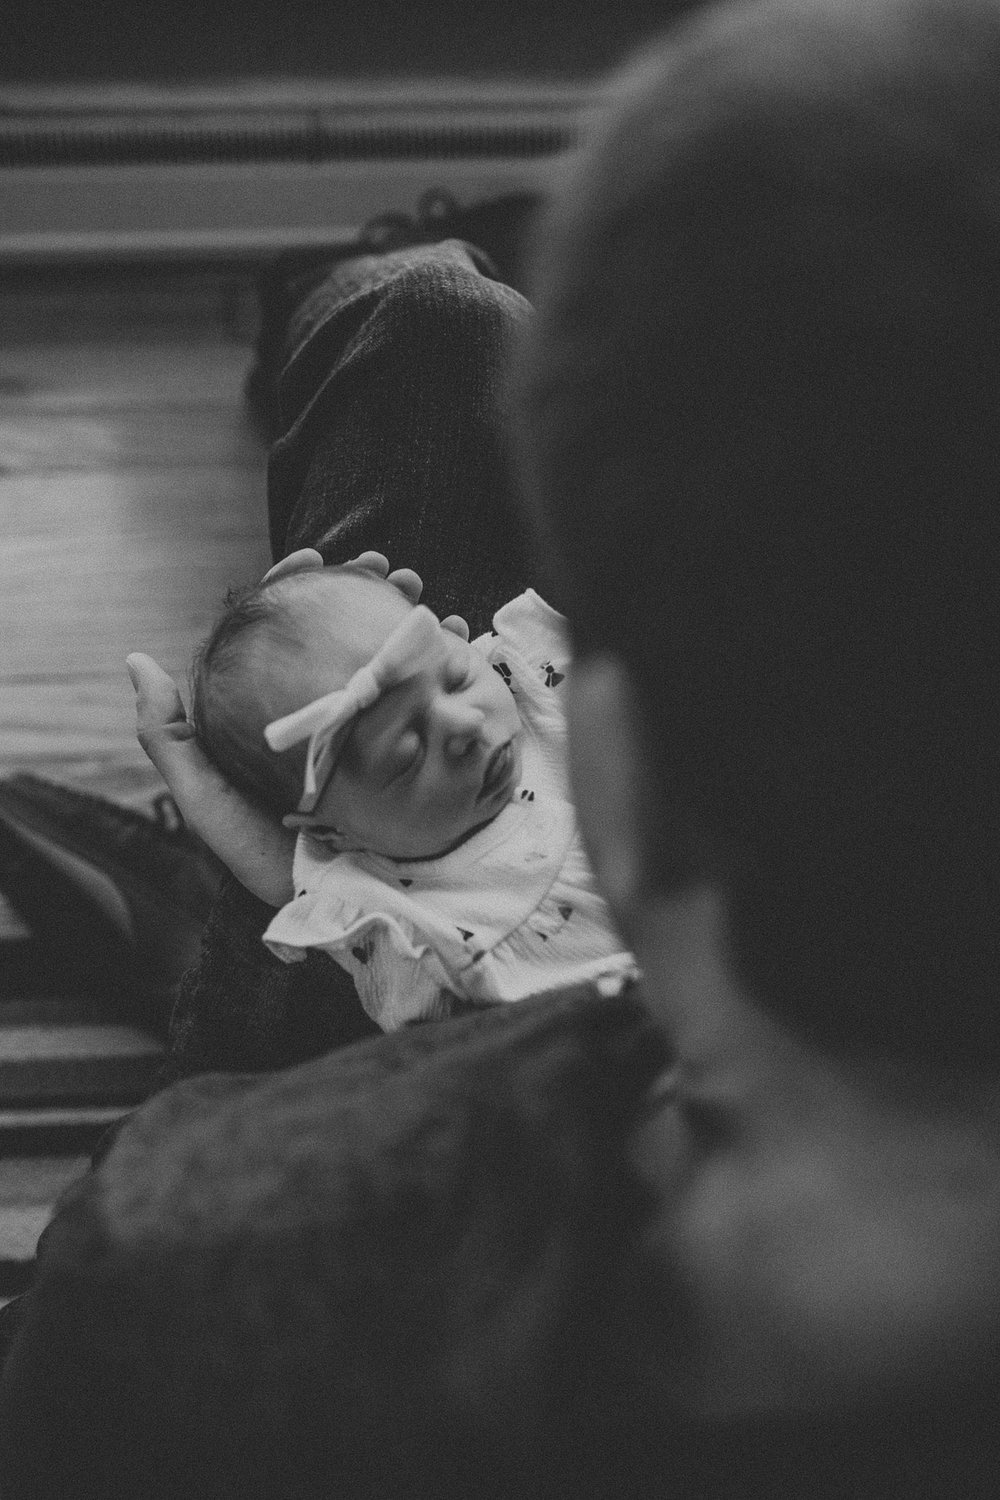 Tiny baby newborn being held by father during in home newborn lifestyle photo session in Lancaster, PA